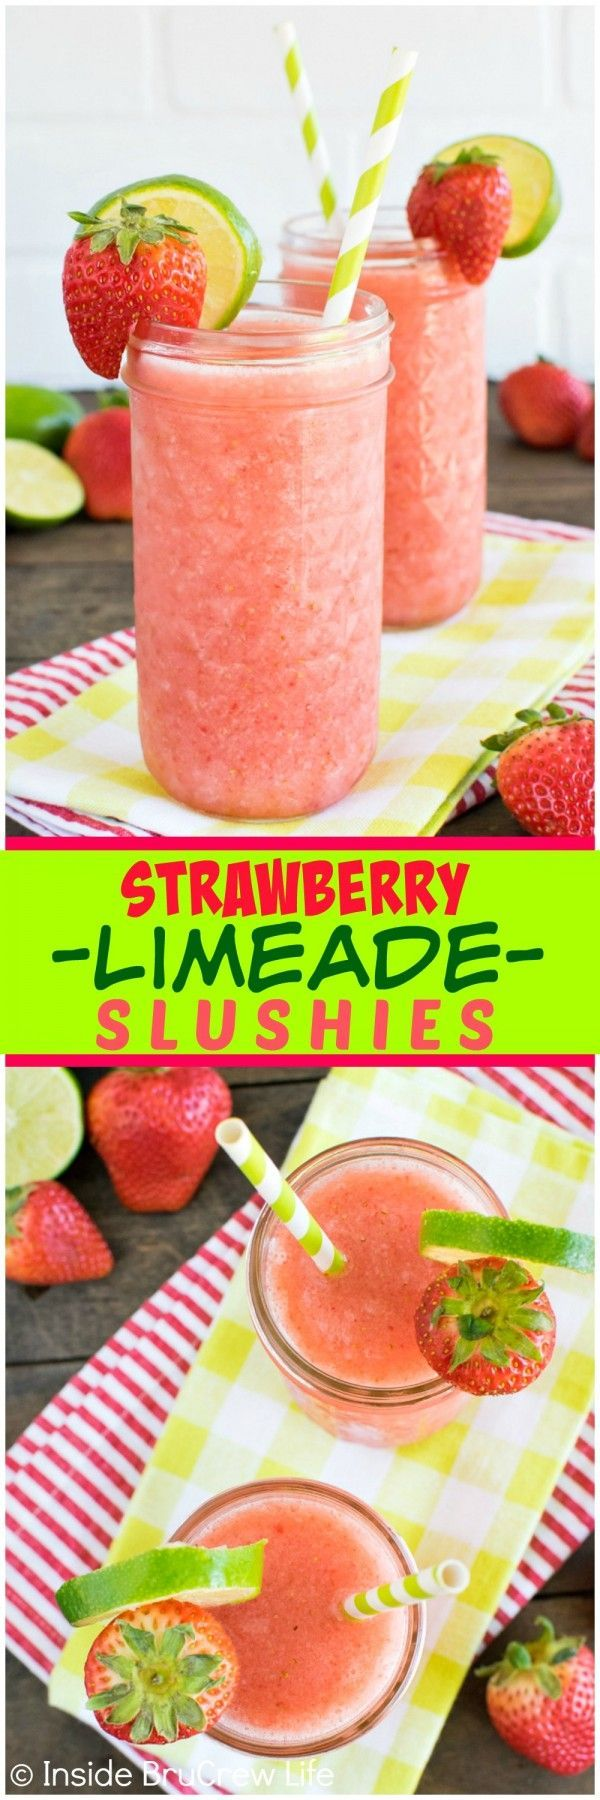 Strawberry Limeade Slushies - fresh berries, juice, and ice blended together makes a refreshing drink on a hot day! Great frozen drink recipe!